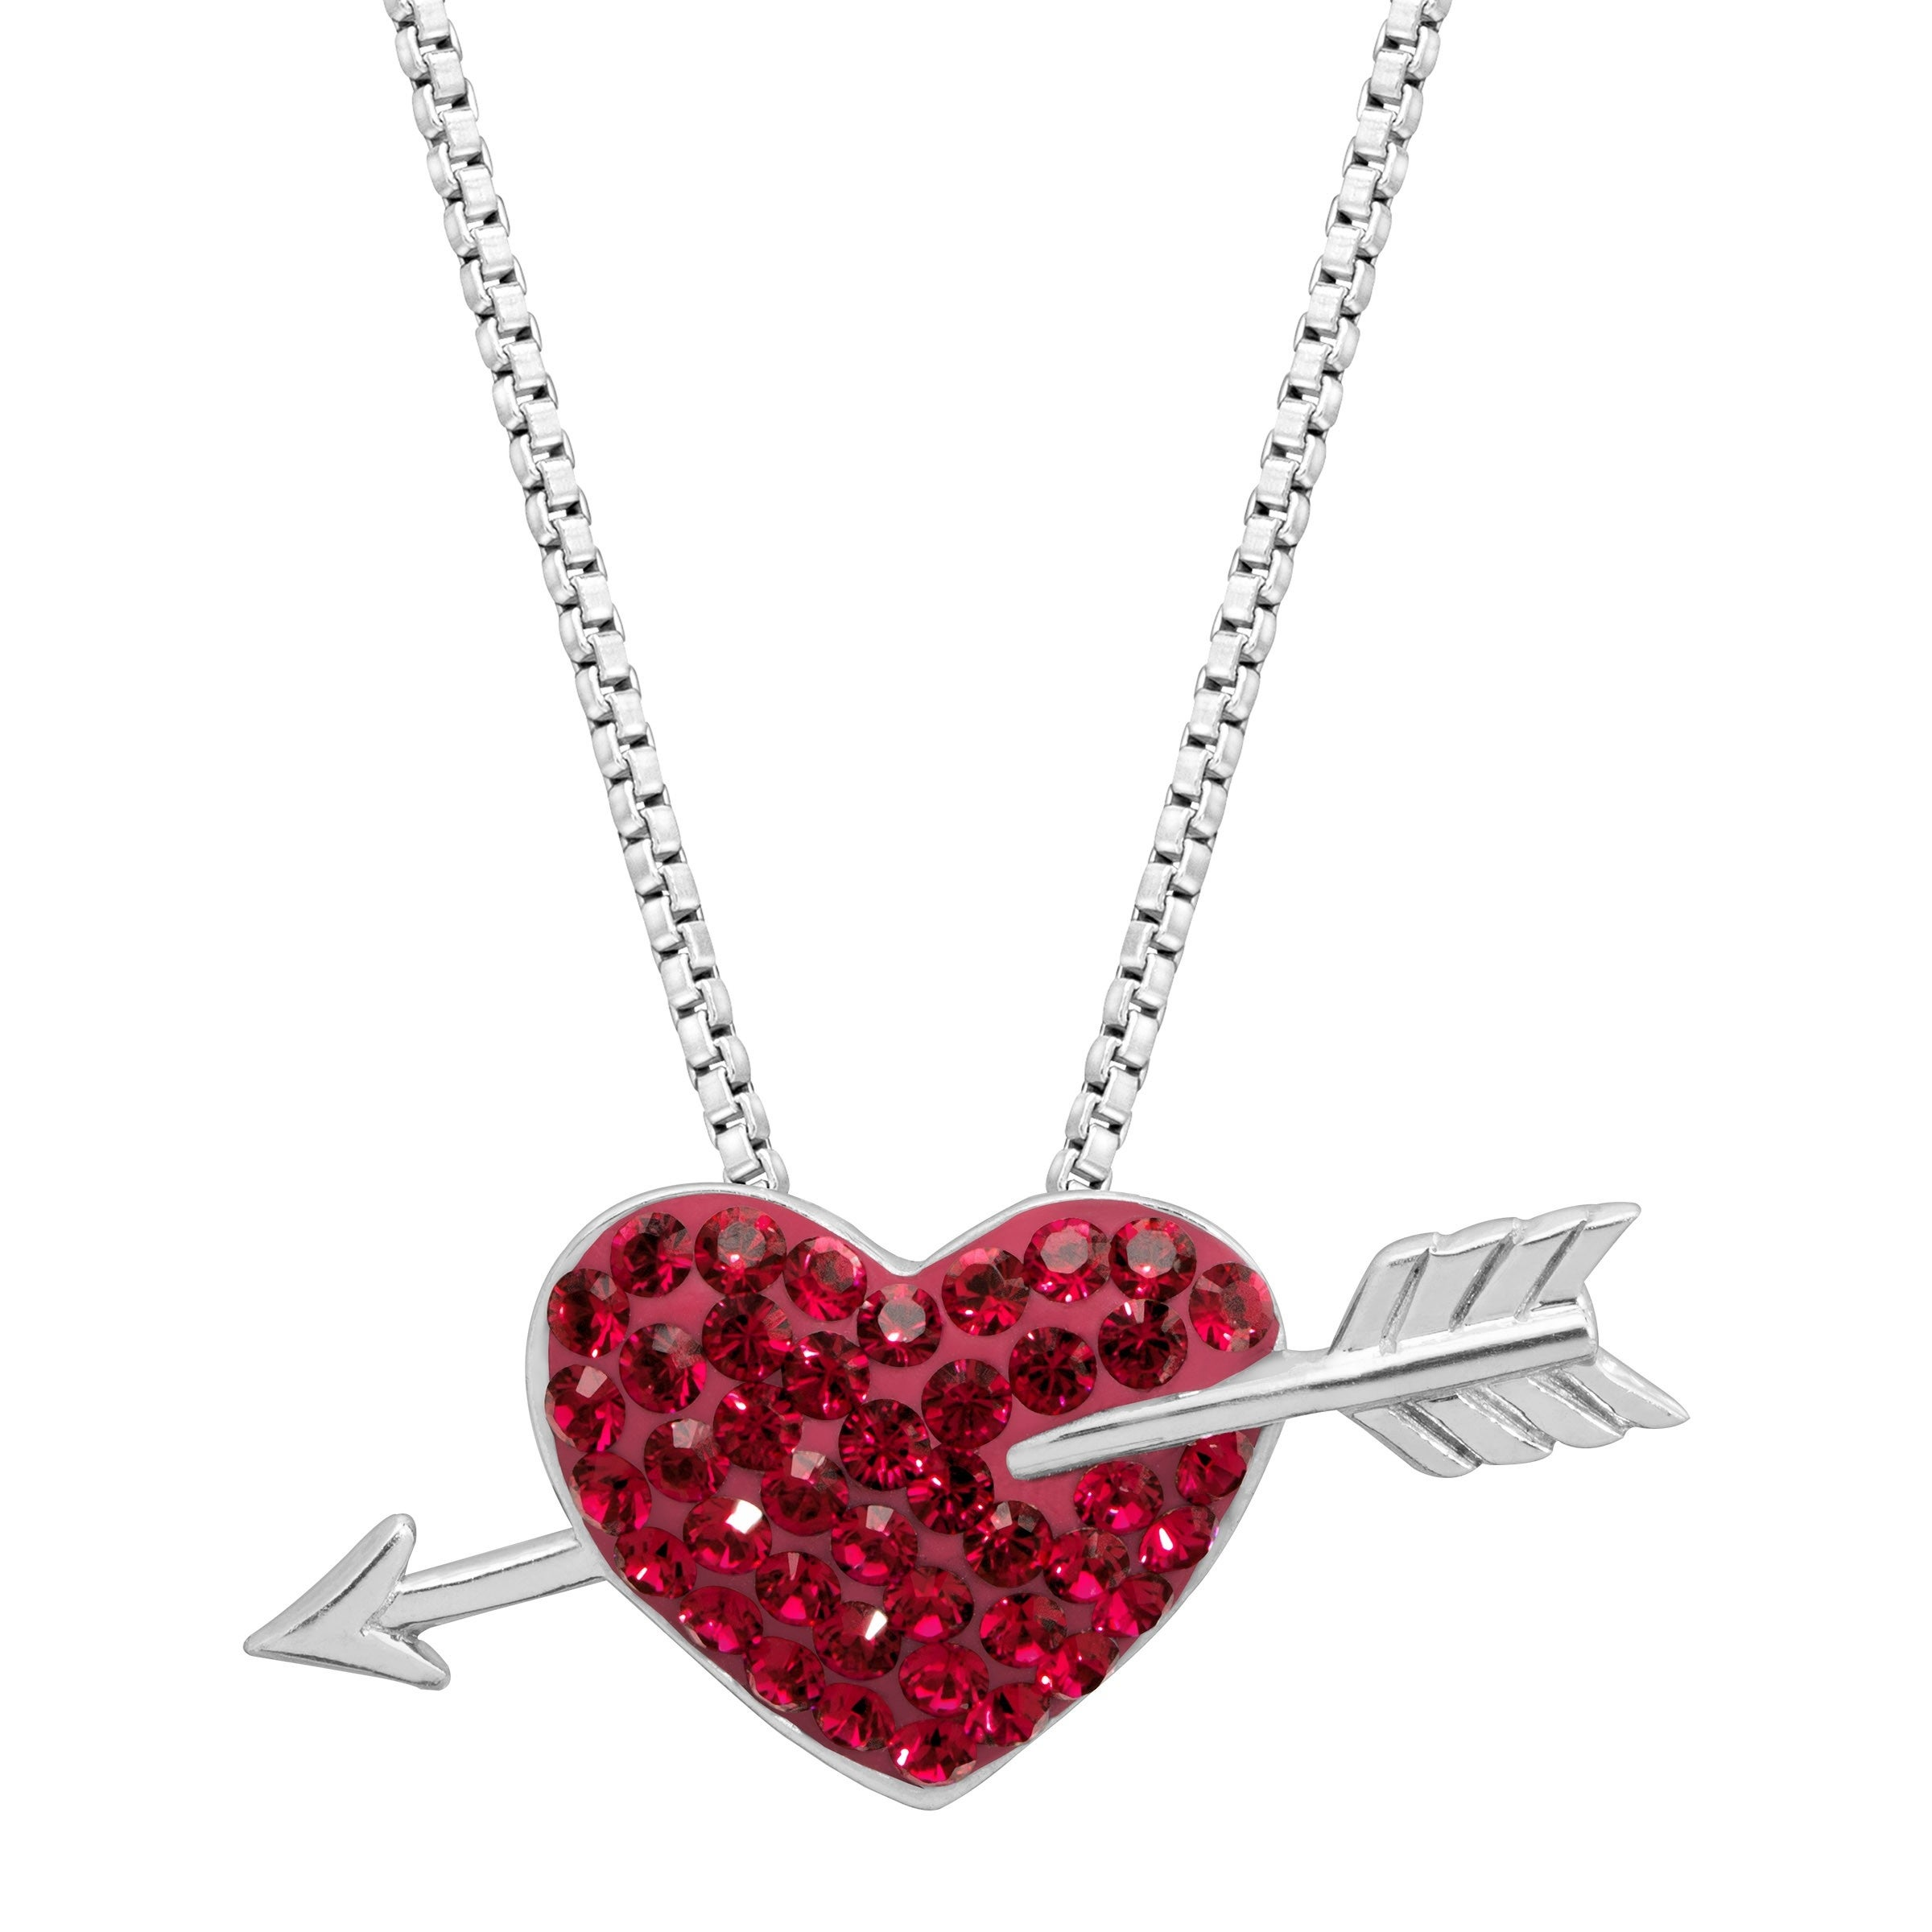 d444f727b Shop Crystaluxe Heart & Arrow Pendant with Swarovski Crystals in  Rhodium-Dipped Sterling Silver - Red - On Sale - Free Shipping On Orders  Over $45 ...